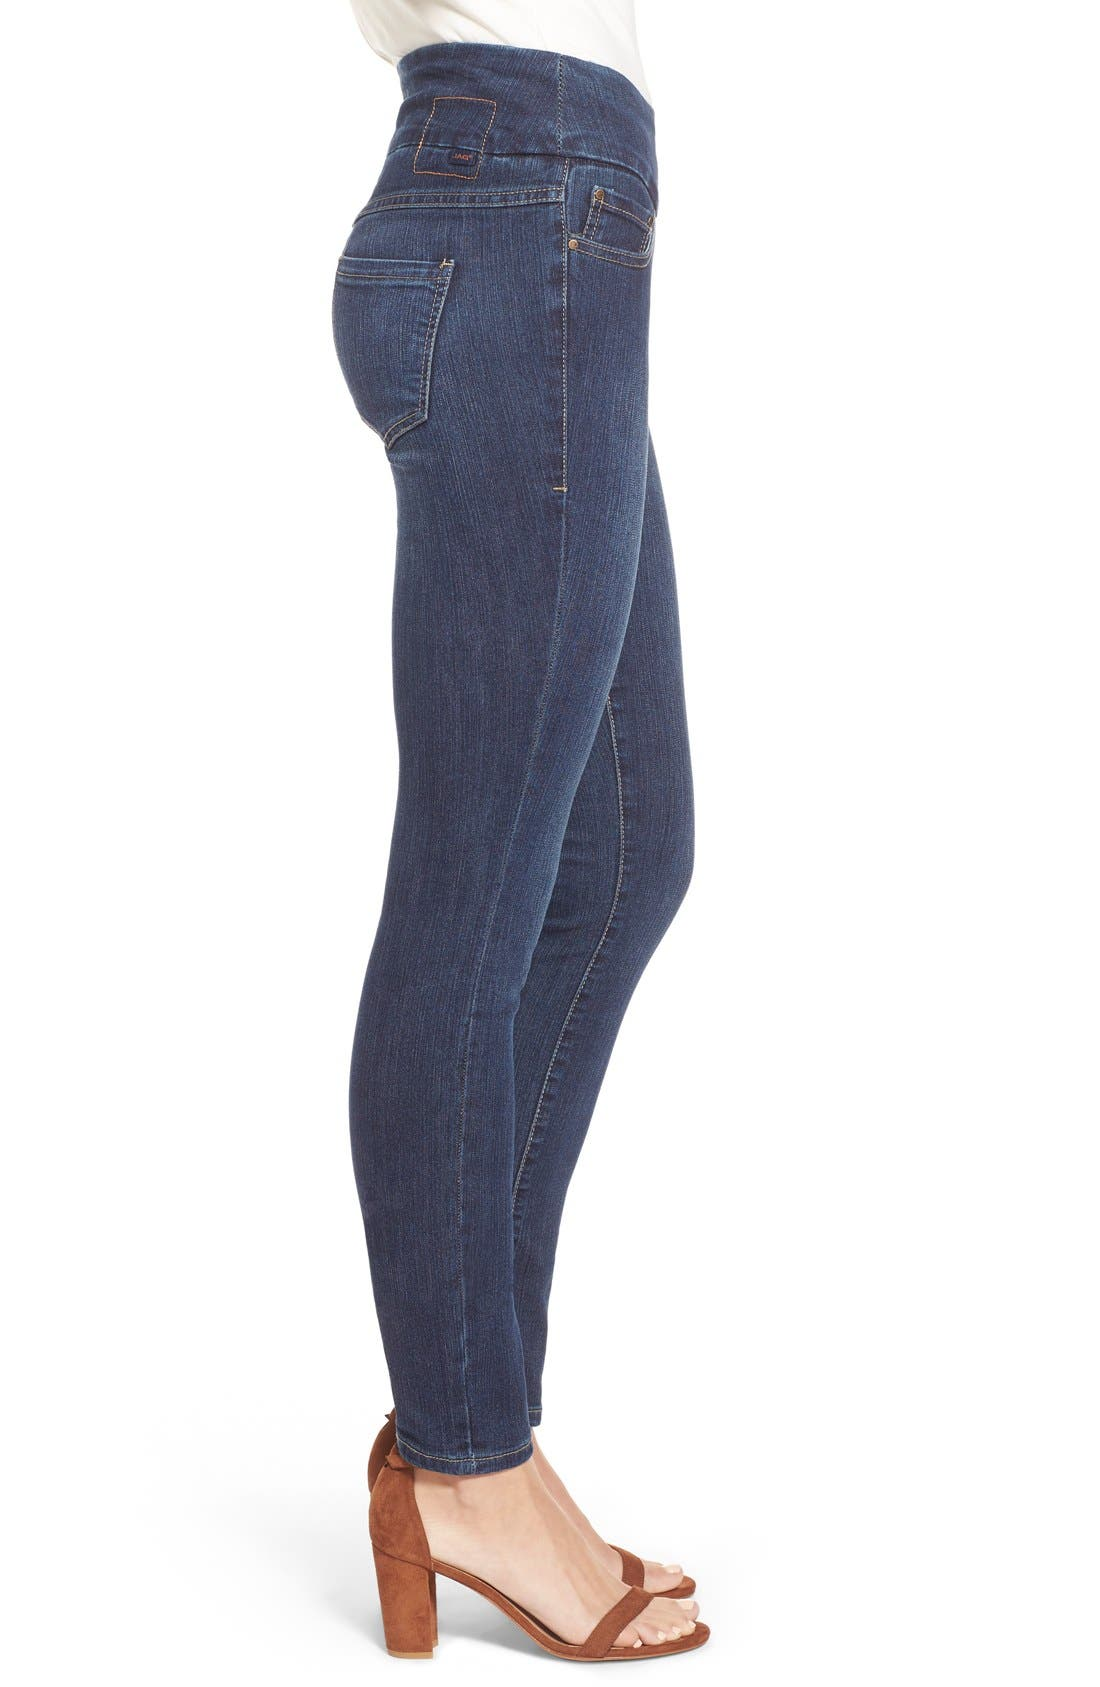 Alternate Image 3  - Jag Jeans 'Nora' Pull-On Stretch Skinny Jeans (Anchor Blue) (Regular & Petite)